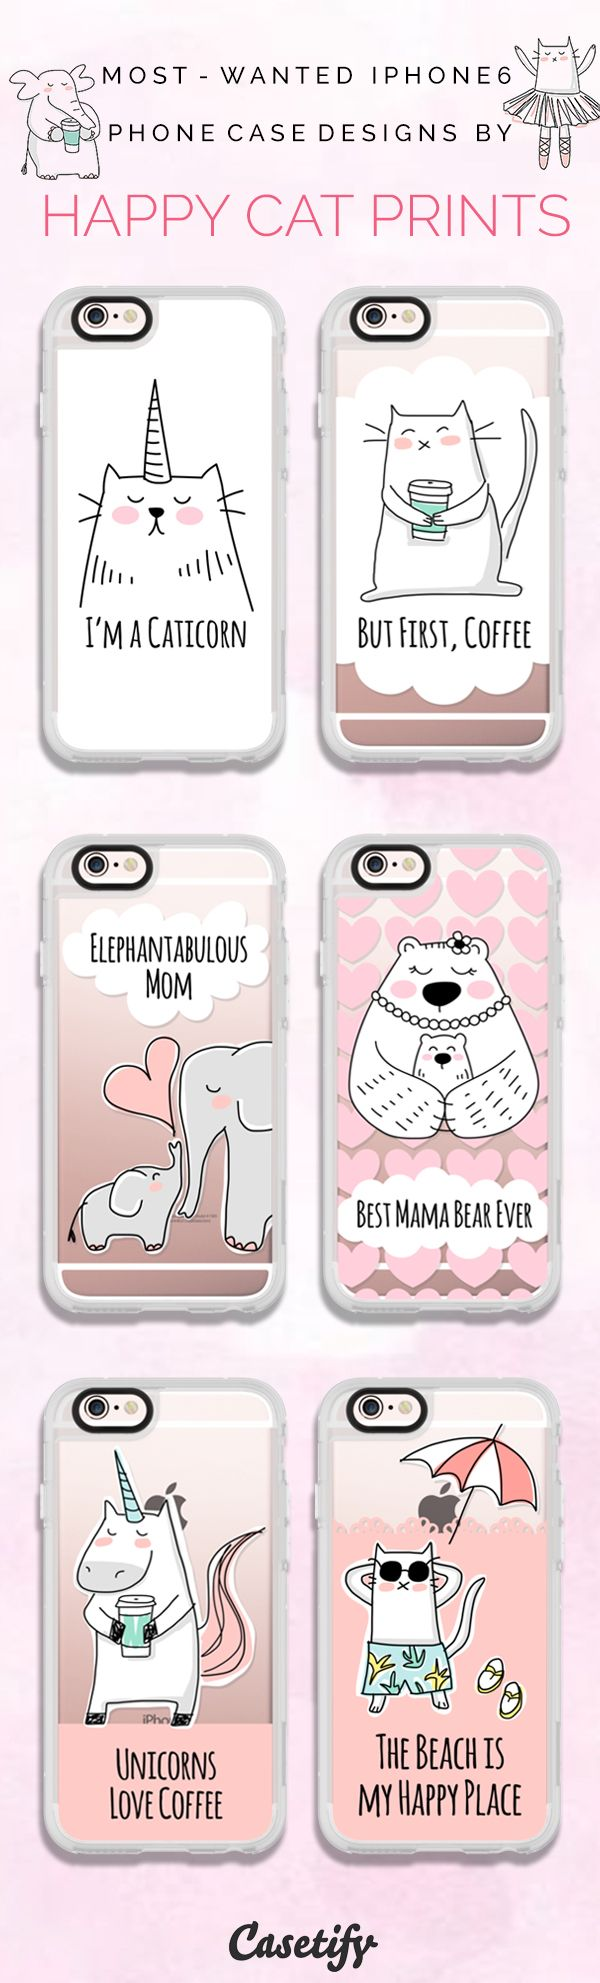 Top 6 iPhone 6 protective phone case designs by Happy Cat Prints | Click through to see more iPhone phone case idea. >>> https://www.casetify.com/happycatprints/collection | @Casetify